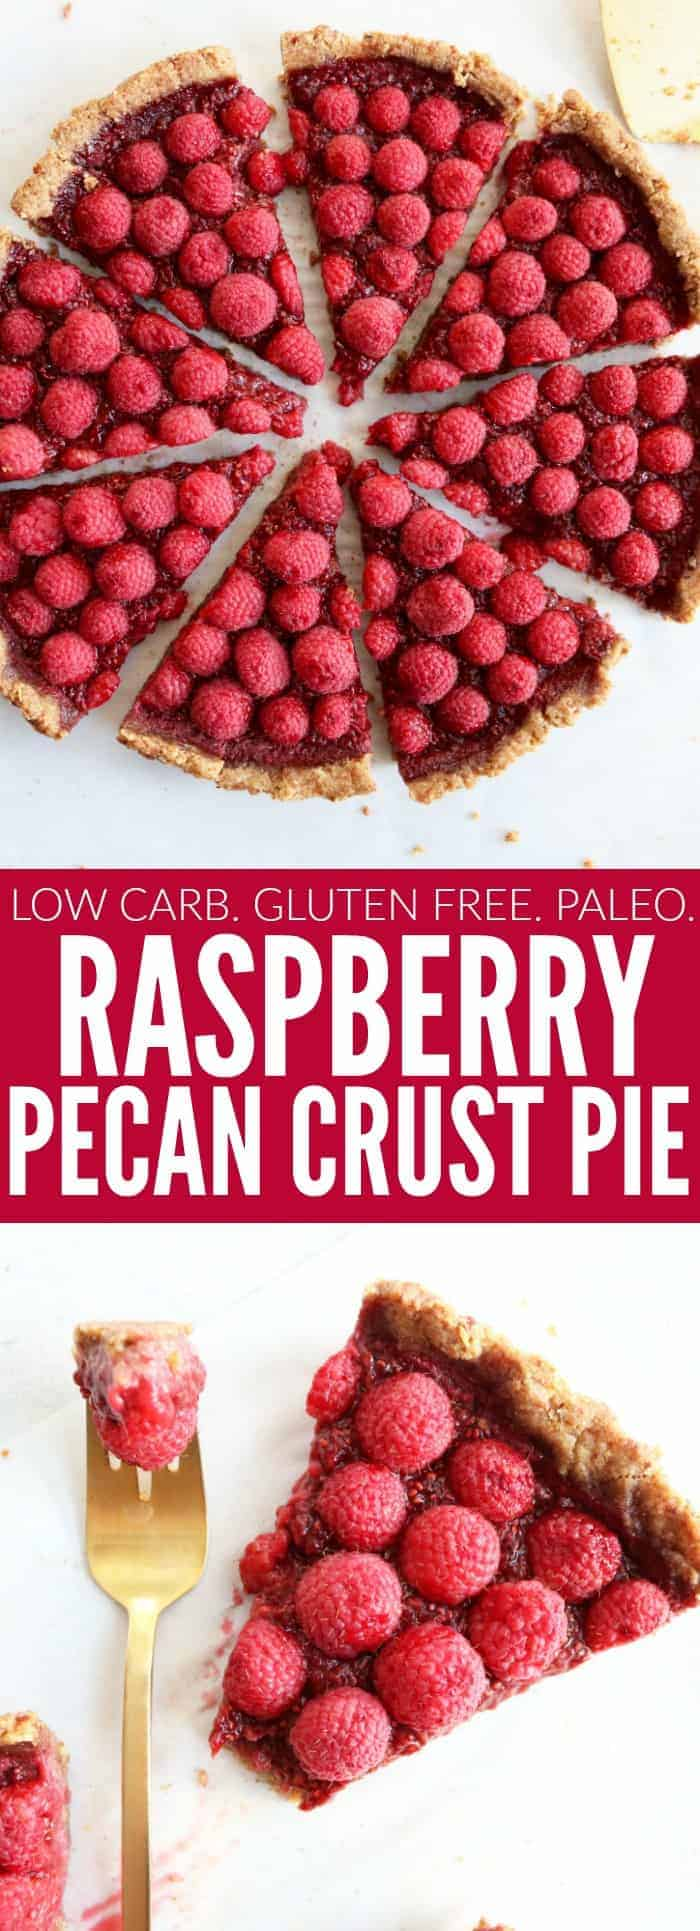 I love this fresh homemade raspberry pie with a pecan crust! It's so delicious, low carb, paleo, and gluten free! Perfect for any holiday celebration!! thetoastedpinenut #lowcarb #glutenfree #paleo #pie #raspberrypie #thanksgiving #dessert